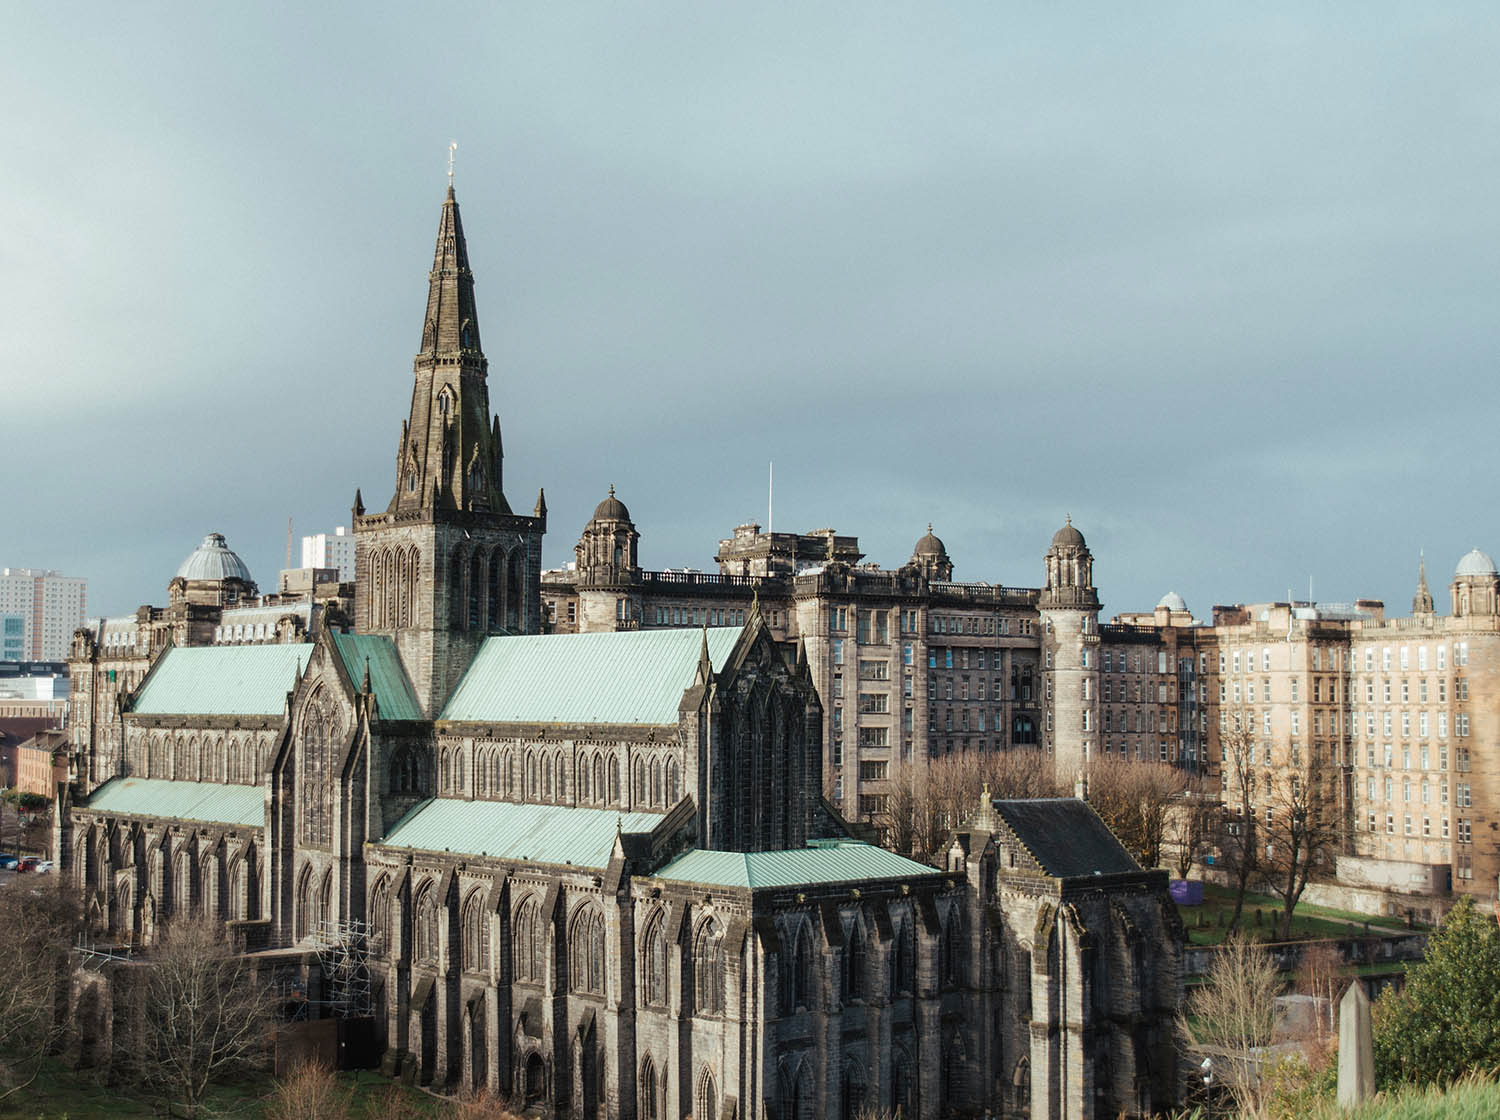 Glasgow Cathedral in Scotland, View from Necropolis